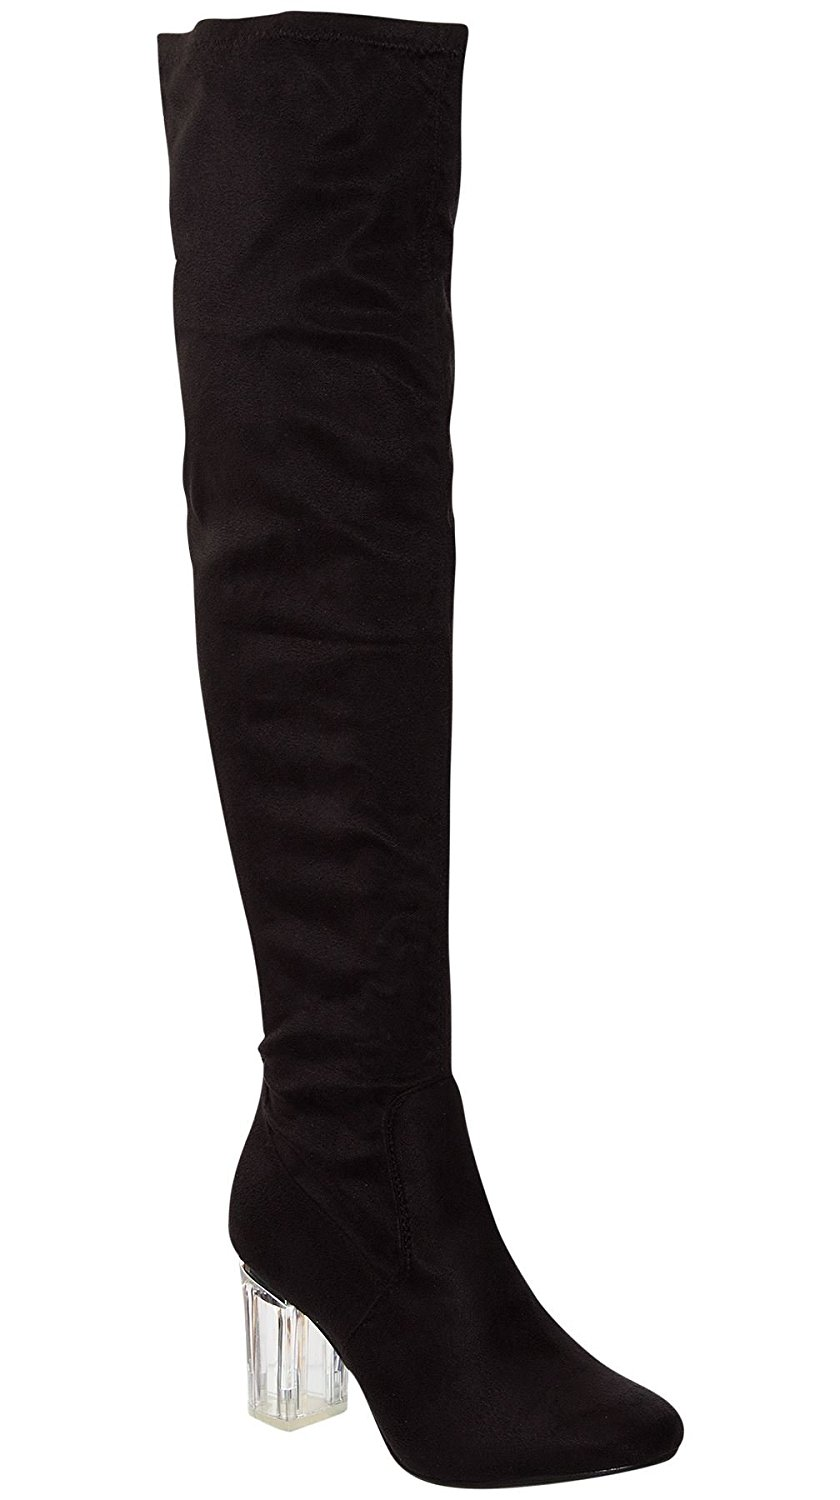 a00b8f6addf Shelikes Womens Ladies Thigh High Boots Over the Knee Party Stretch Block  Mid Size Perspex Heel